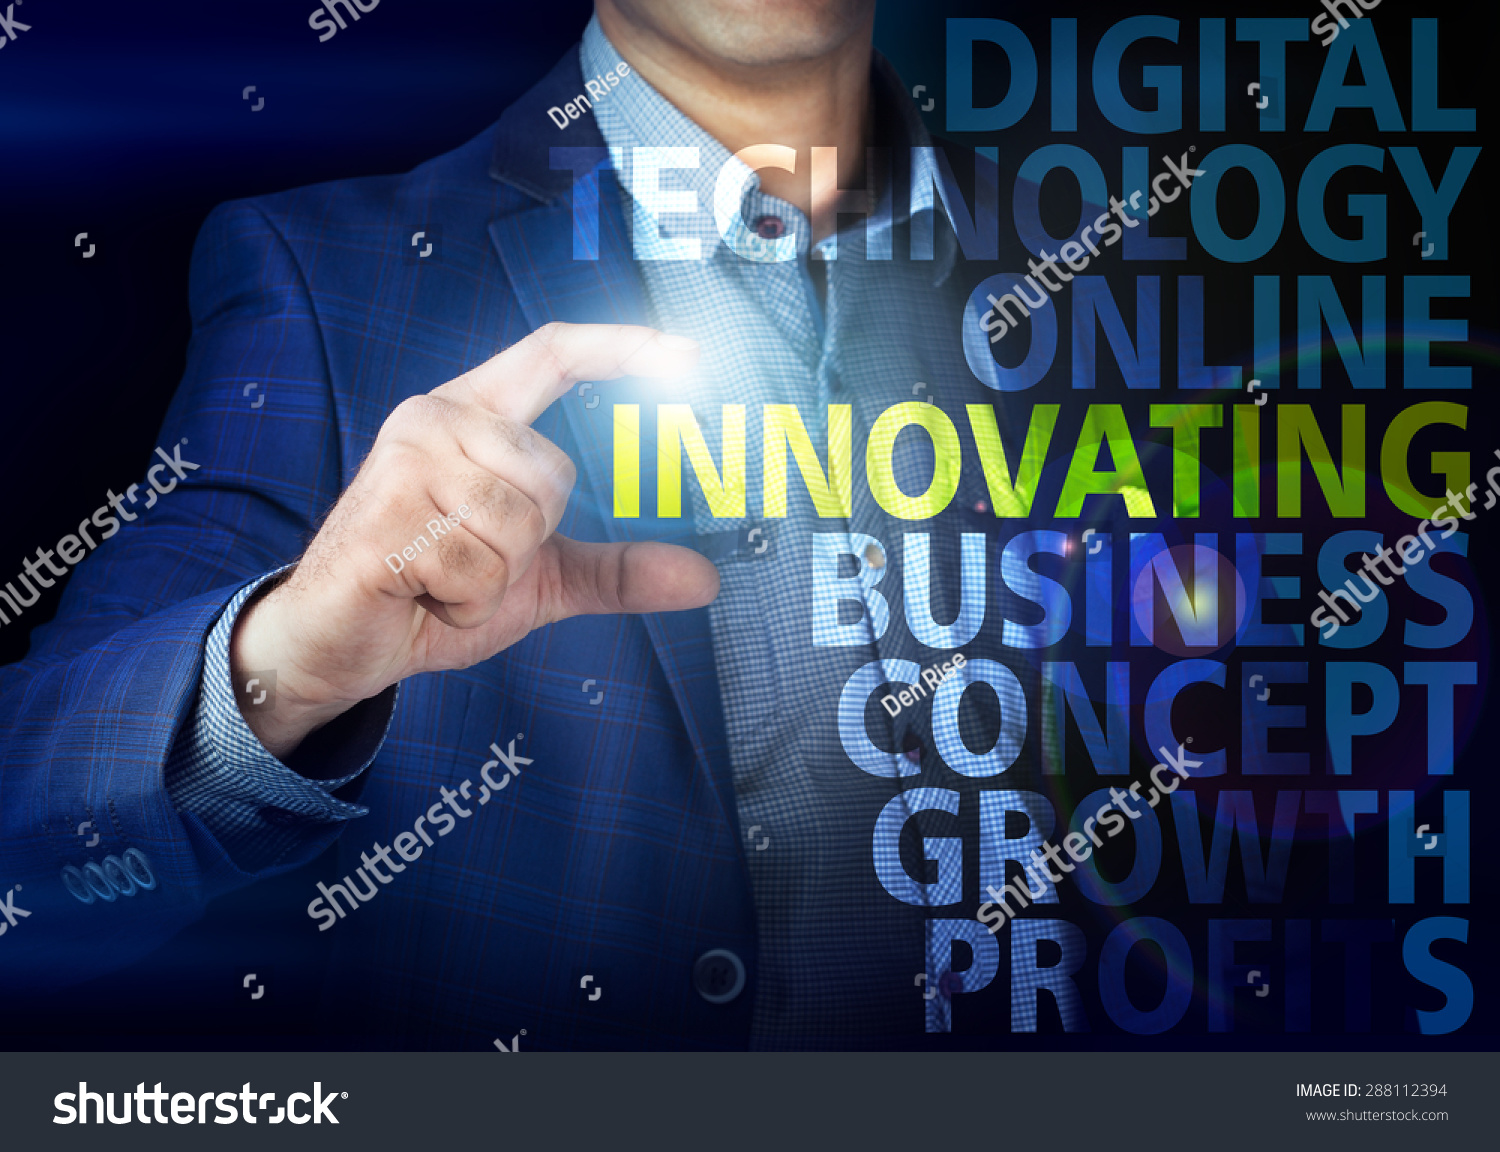 how to get start innovating